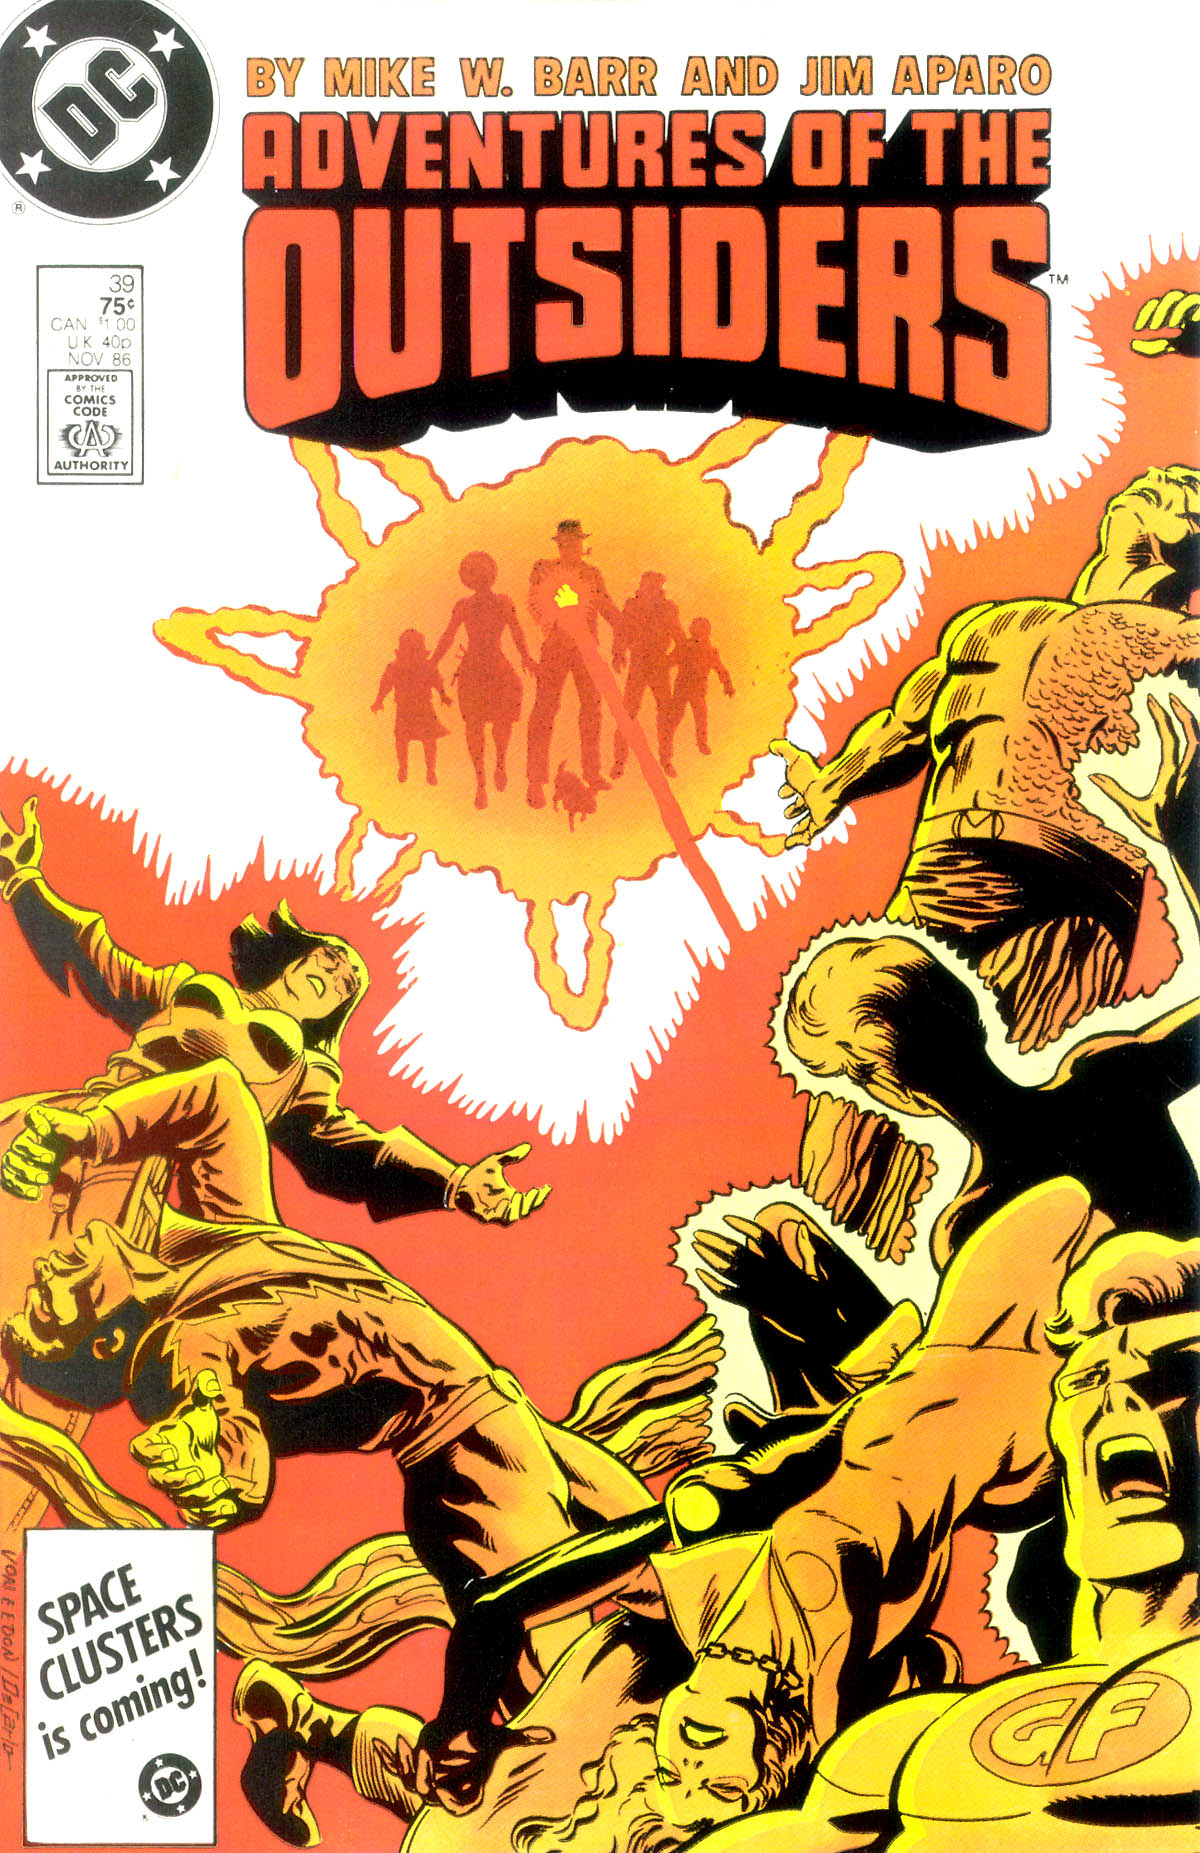 Adventures of the Outsiders 39 Page 1